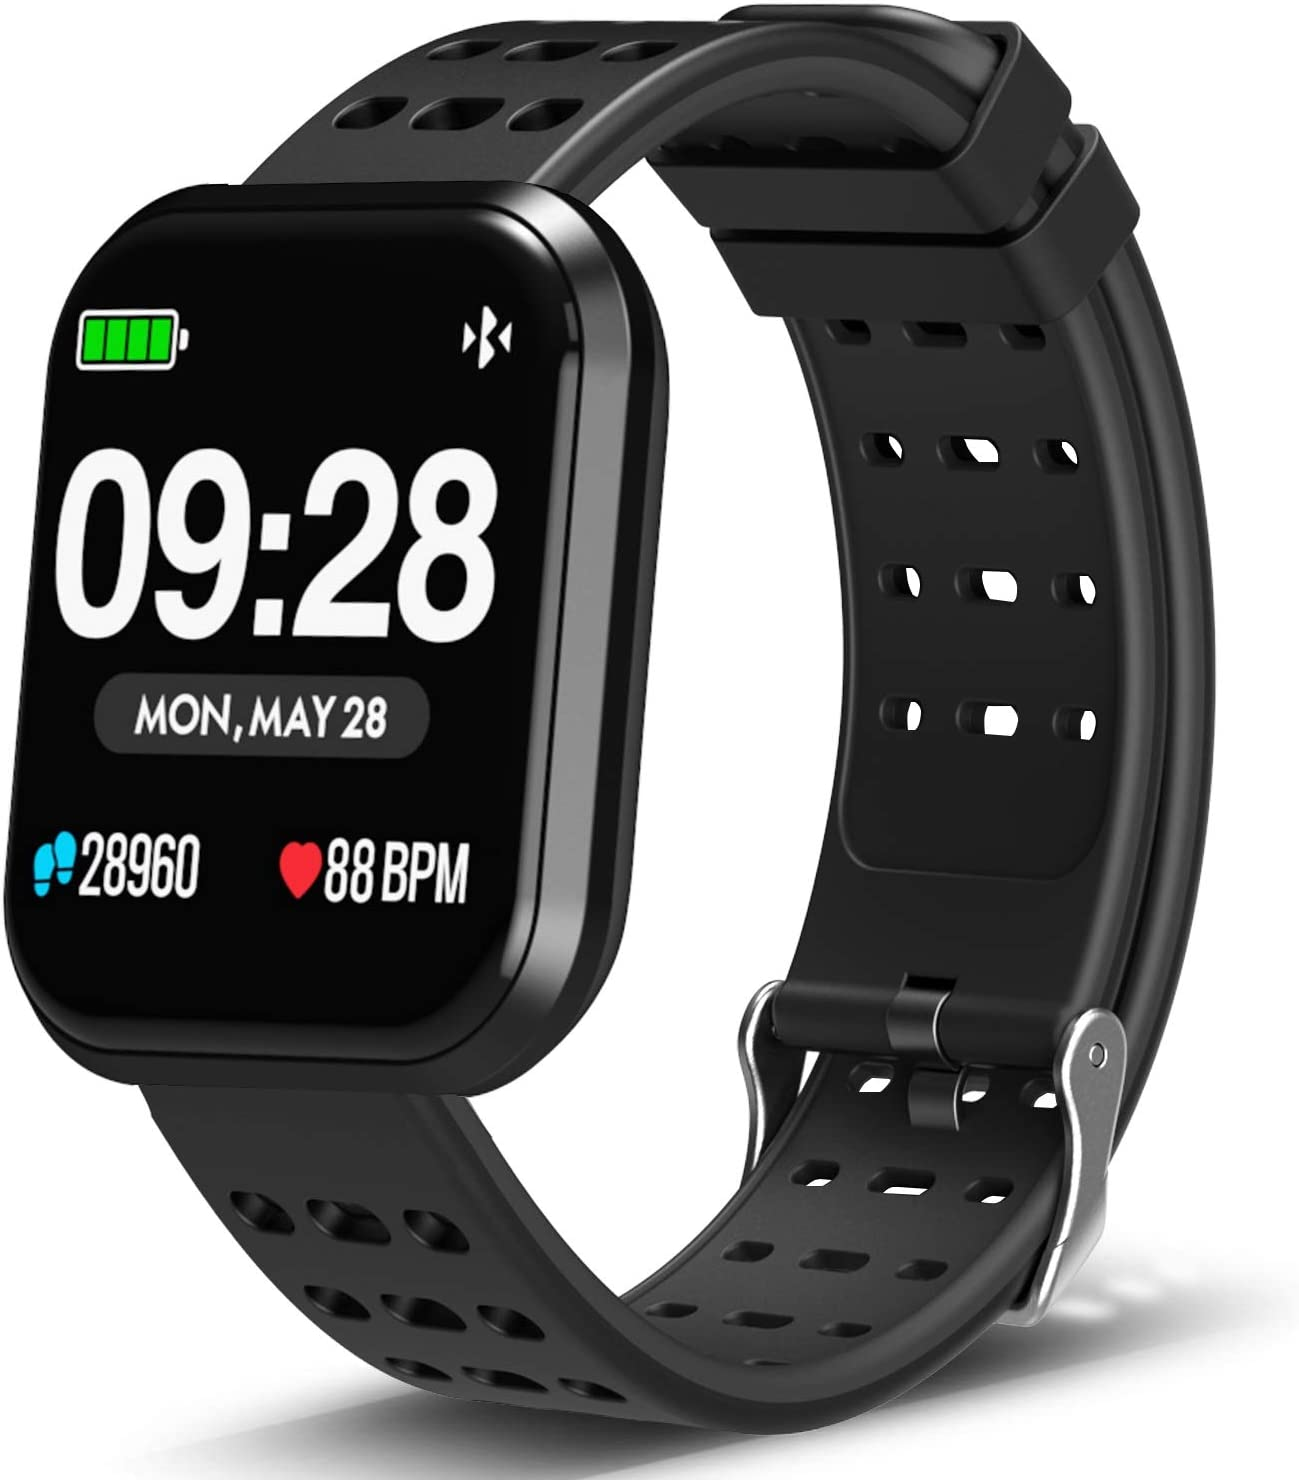 DoSmarter Surpro Fitness Watch, Wearable Activity Tracker Running Watch with Heart Rate Monitor, Waterproof Smart Wristband Pedometer Watch for Kids ...